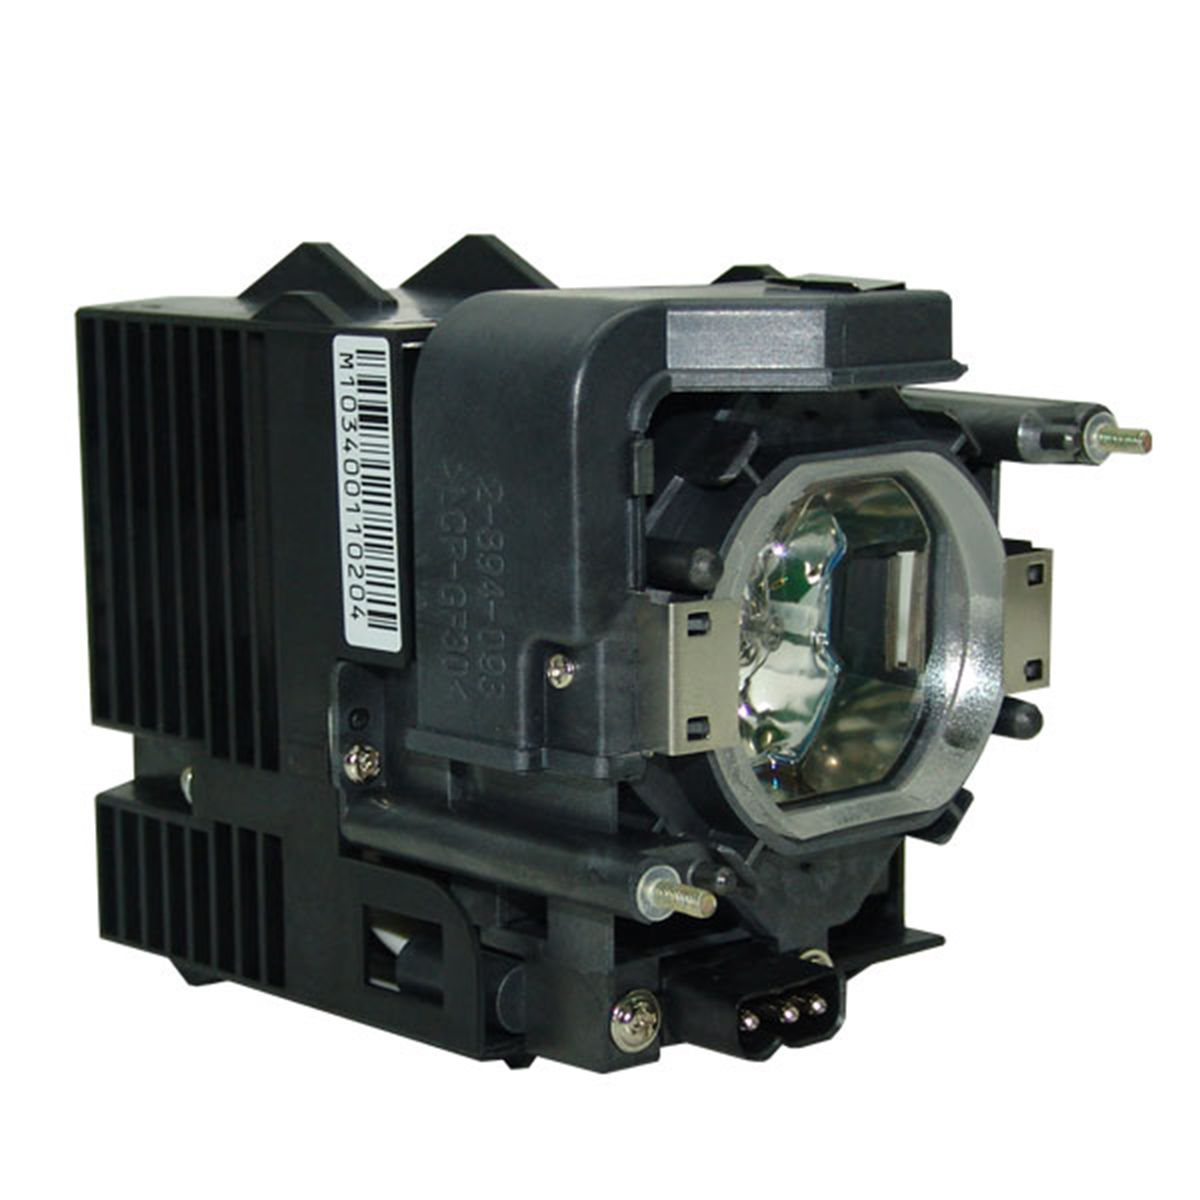 Projector Lamp Bulb LMP-F270 for SONY VPL-FE40 VPL-FE40L VPL-FX40 VPL-FX40L VPL-FX41 VPL-FX41L VPL-FW41 VPL-FW41L With Housing fx40 fx41 fx41lfx40l fe40 fe40l projector power supply